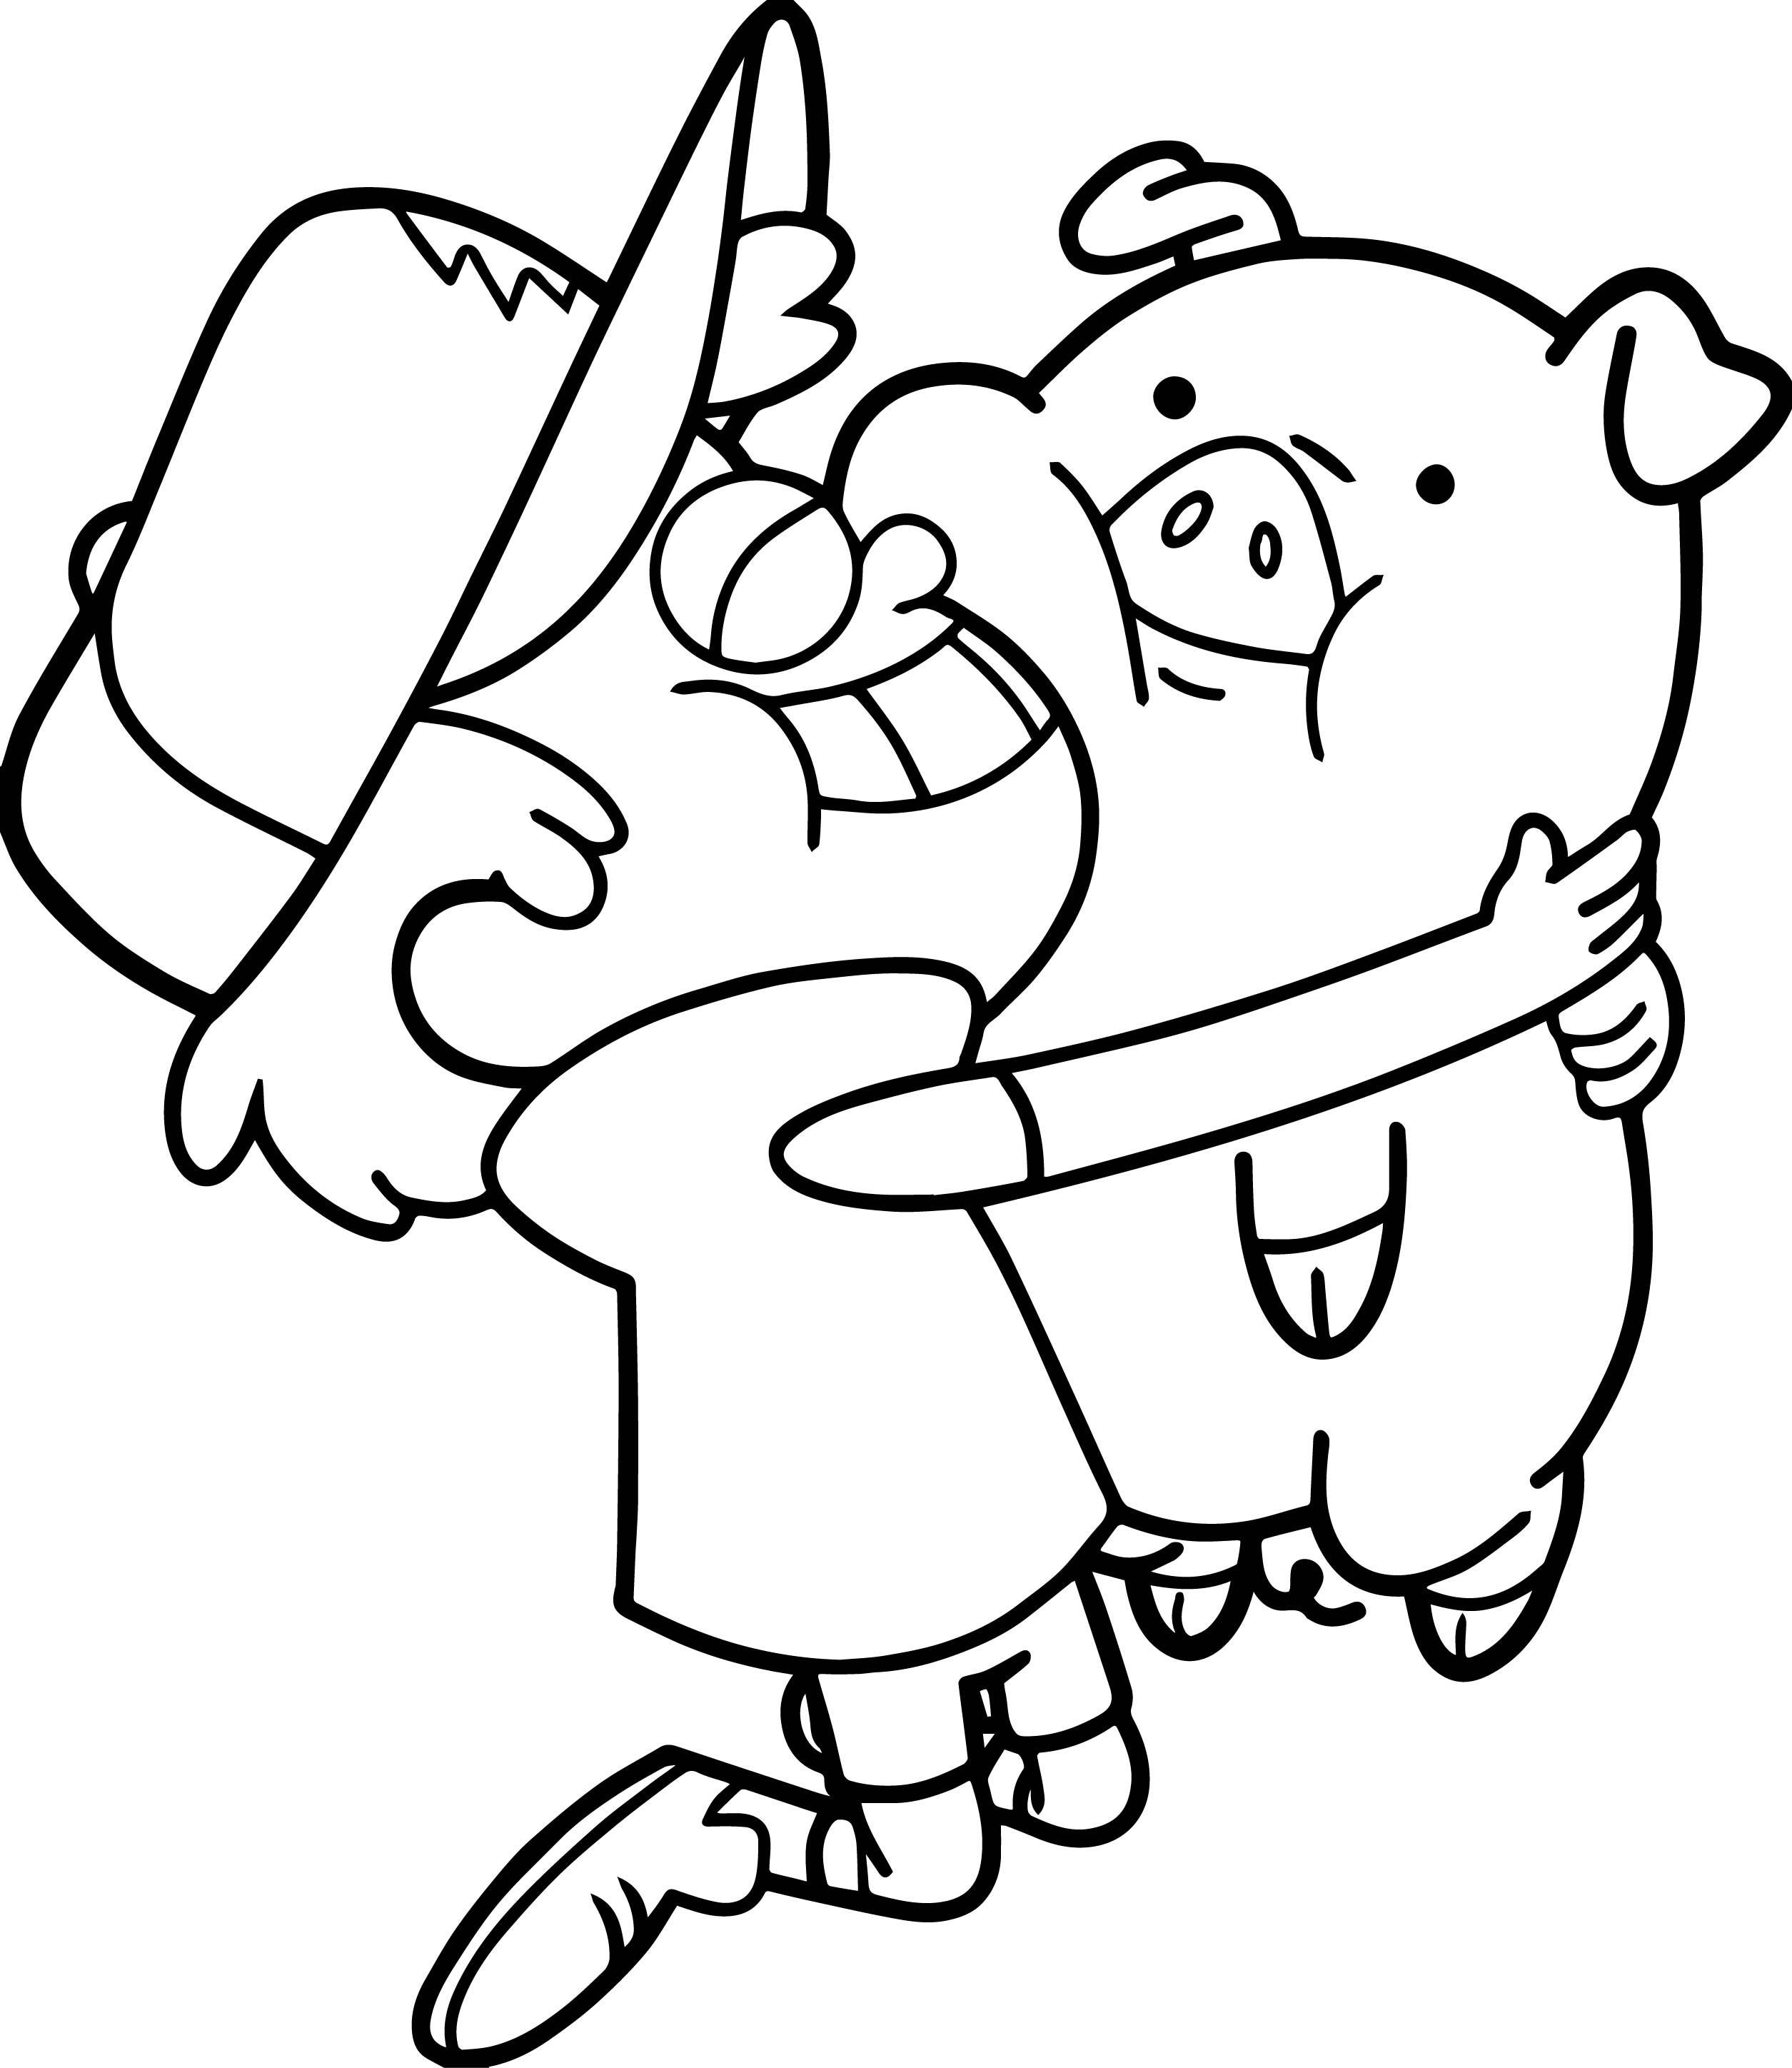 Pig My Best Friends Coloring Page | Wecoloringpage.com